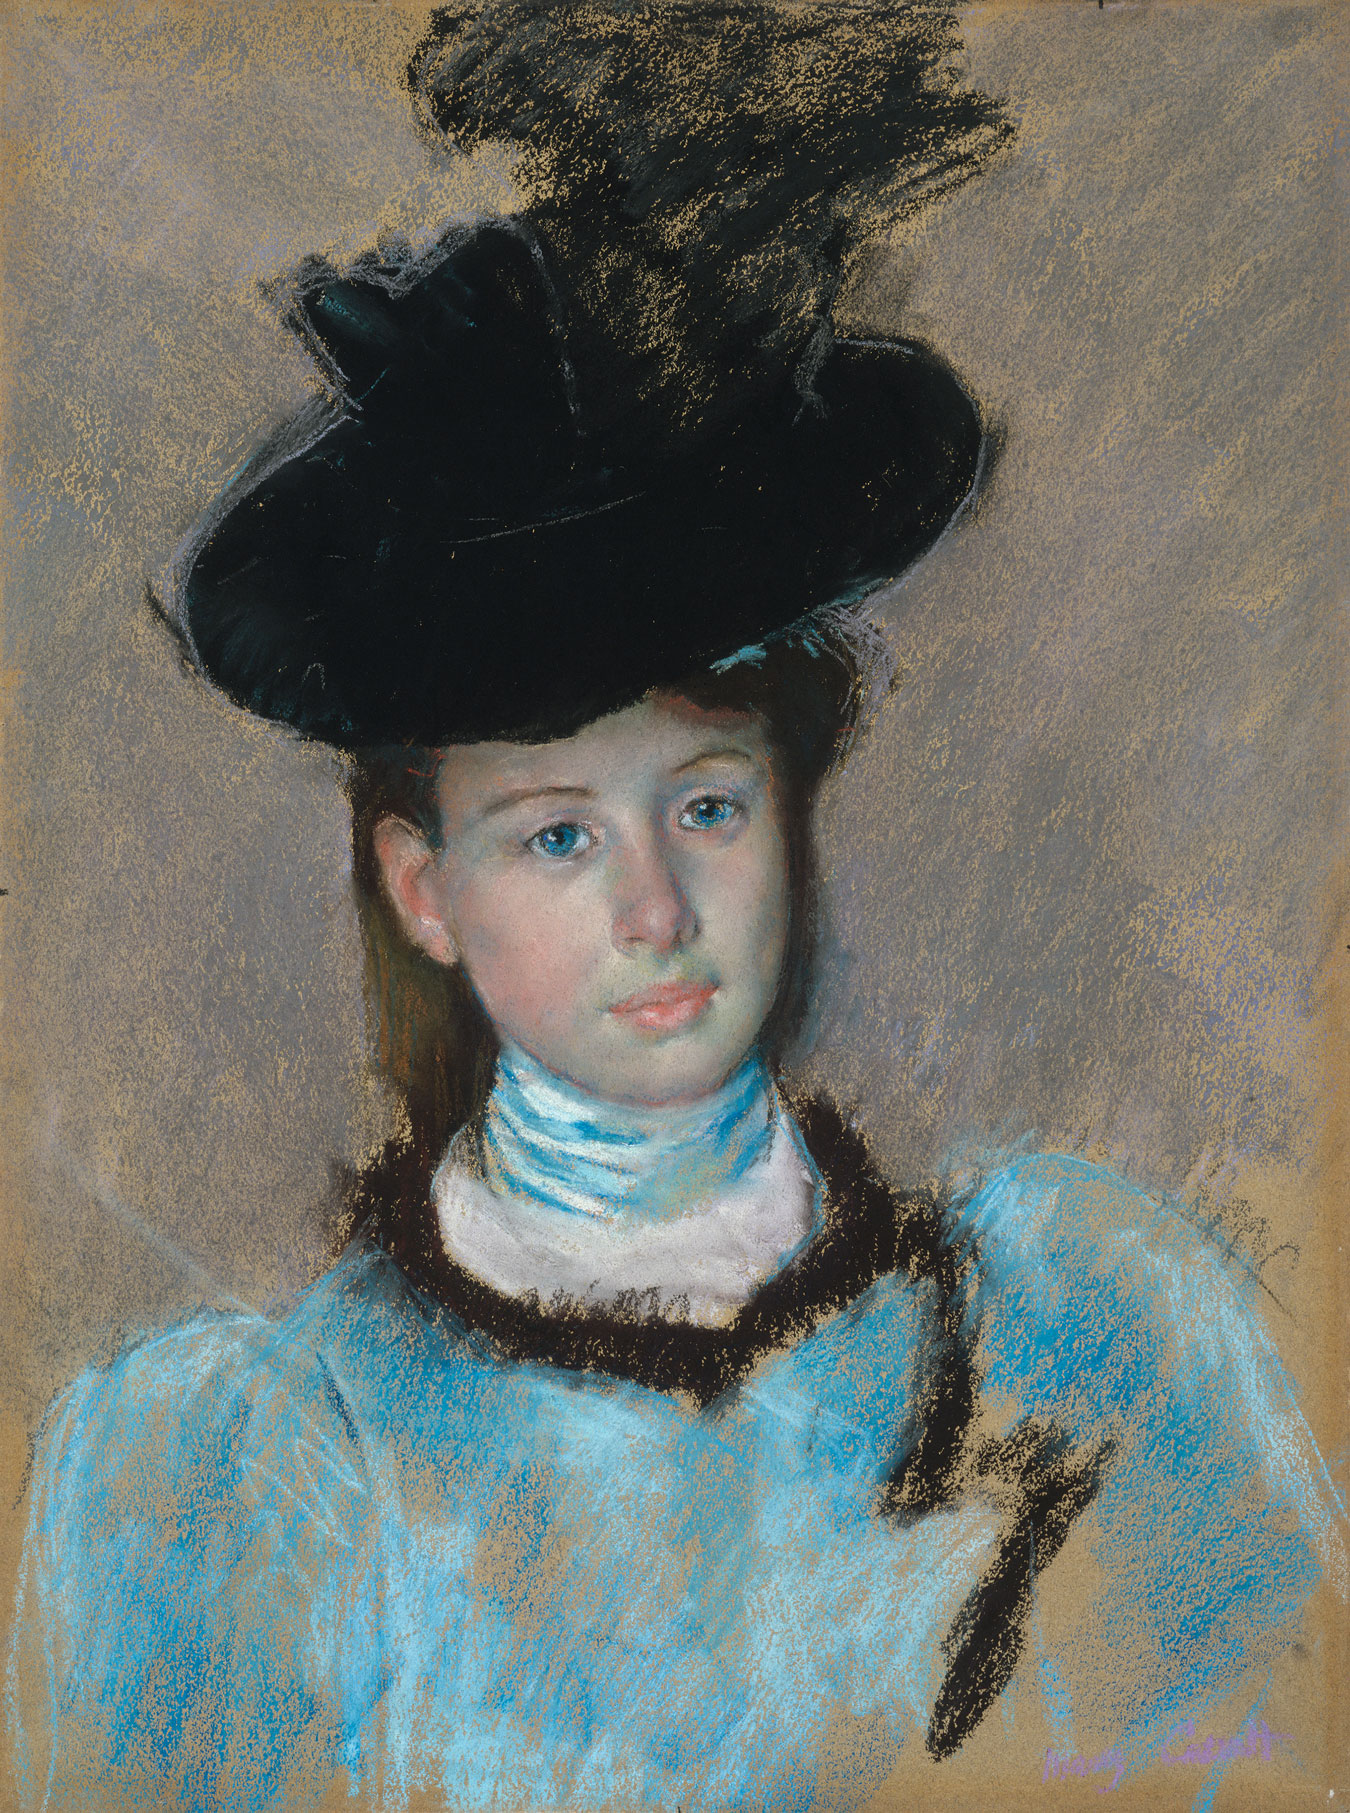 Mary Cassatt, The Black Hat, c. 1890,pastel National Gallery of Art, Washington, Collection of Mr. and Mrs. Paul Mellon